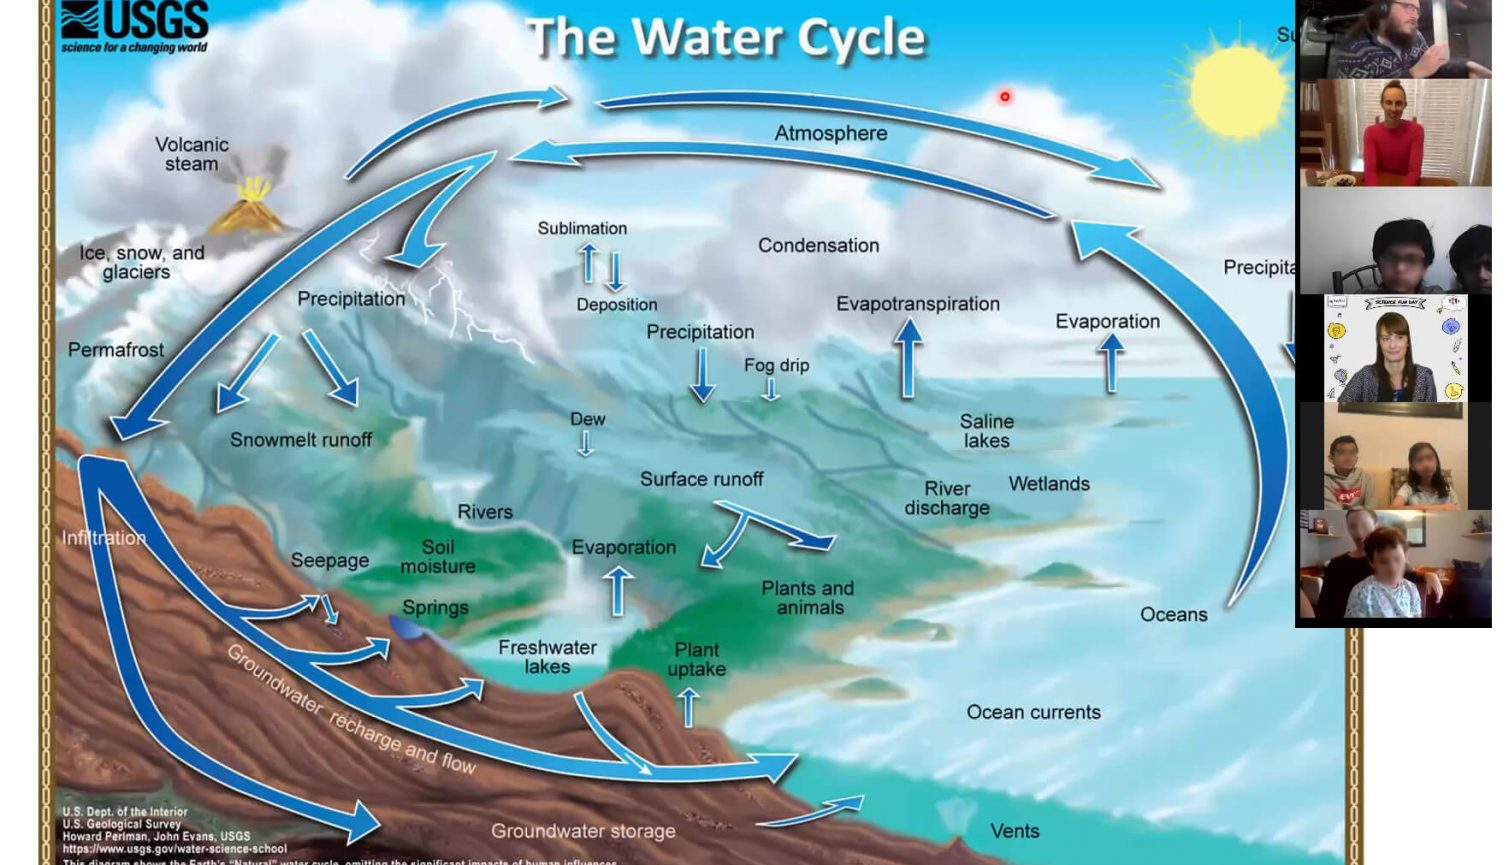 IWS_Science_for_kids_The_Water_Cycle